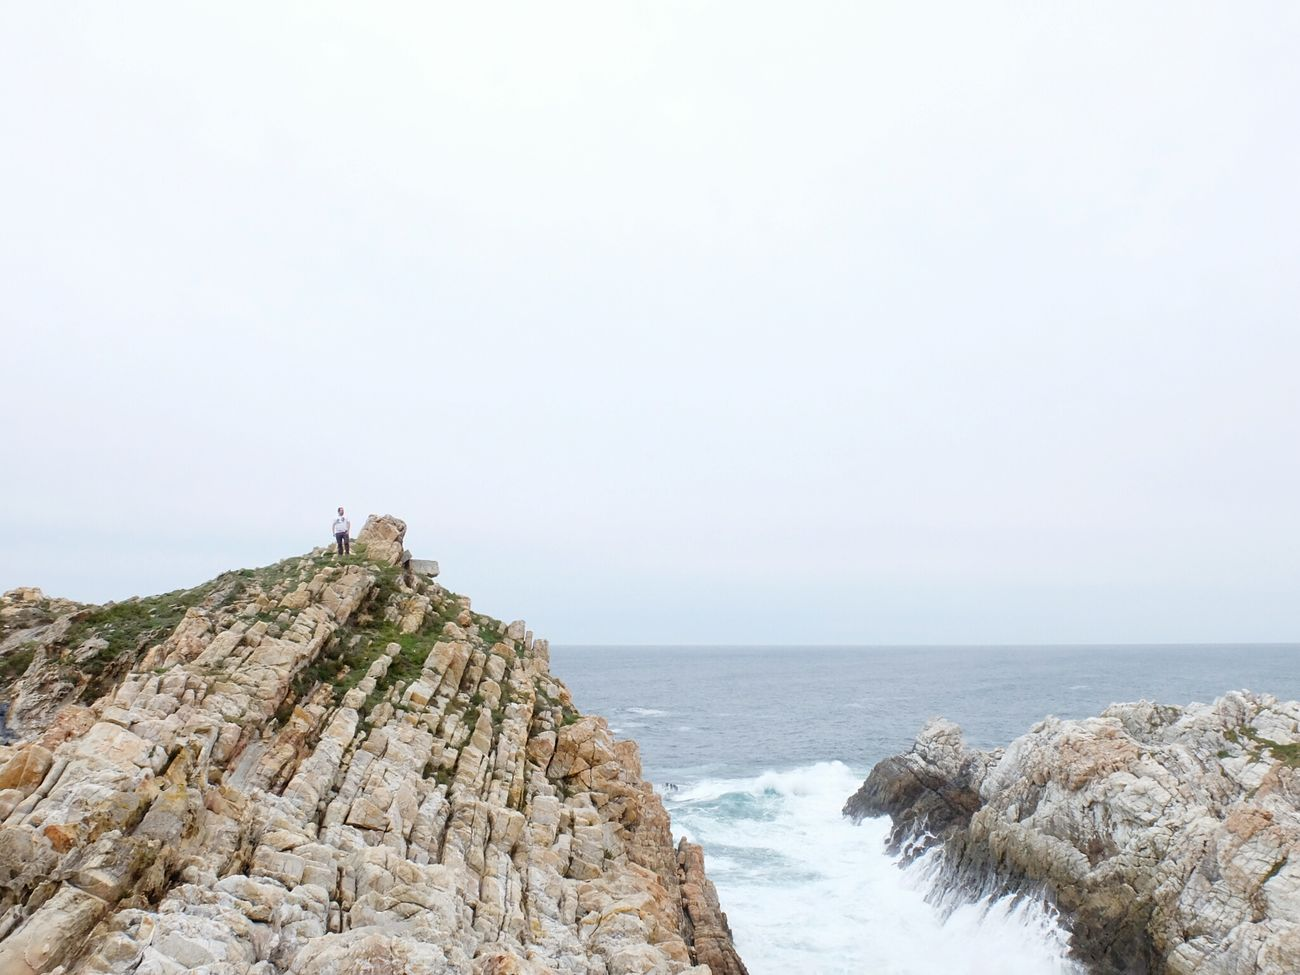 Edge Of The World Porcia Eyem Asturias Asturias Asturias Occidente Fujifilm X30 Nature Rock Geology Landscape